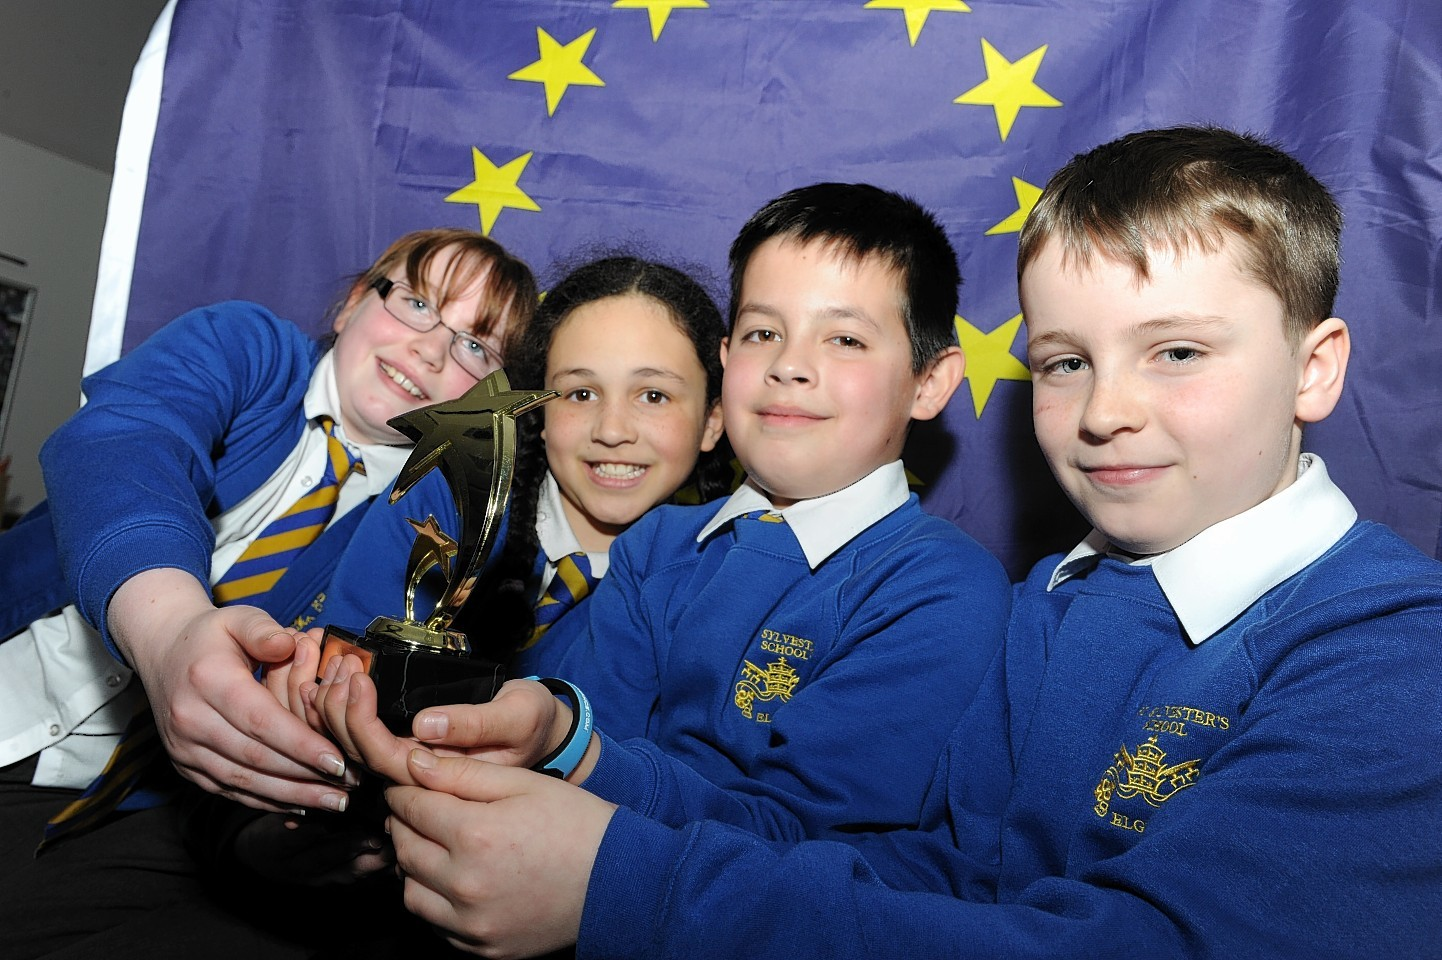 St Sylvester's RC pupils to compete against other regional winners in a televised contest on Monday, May 11